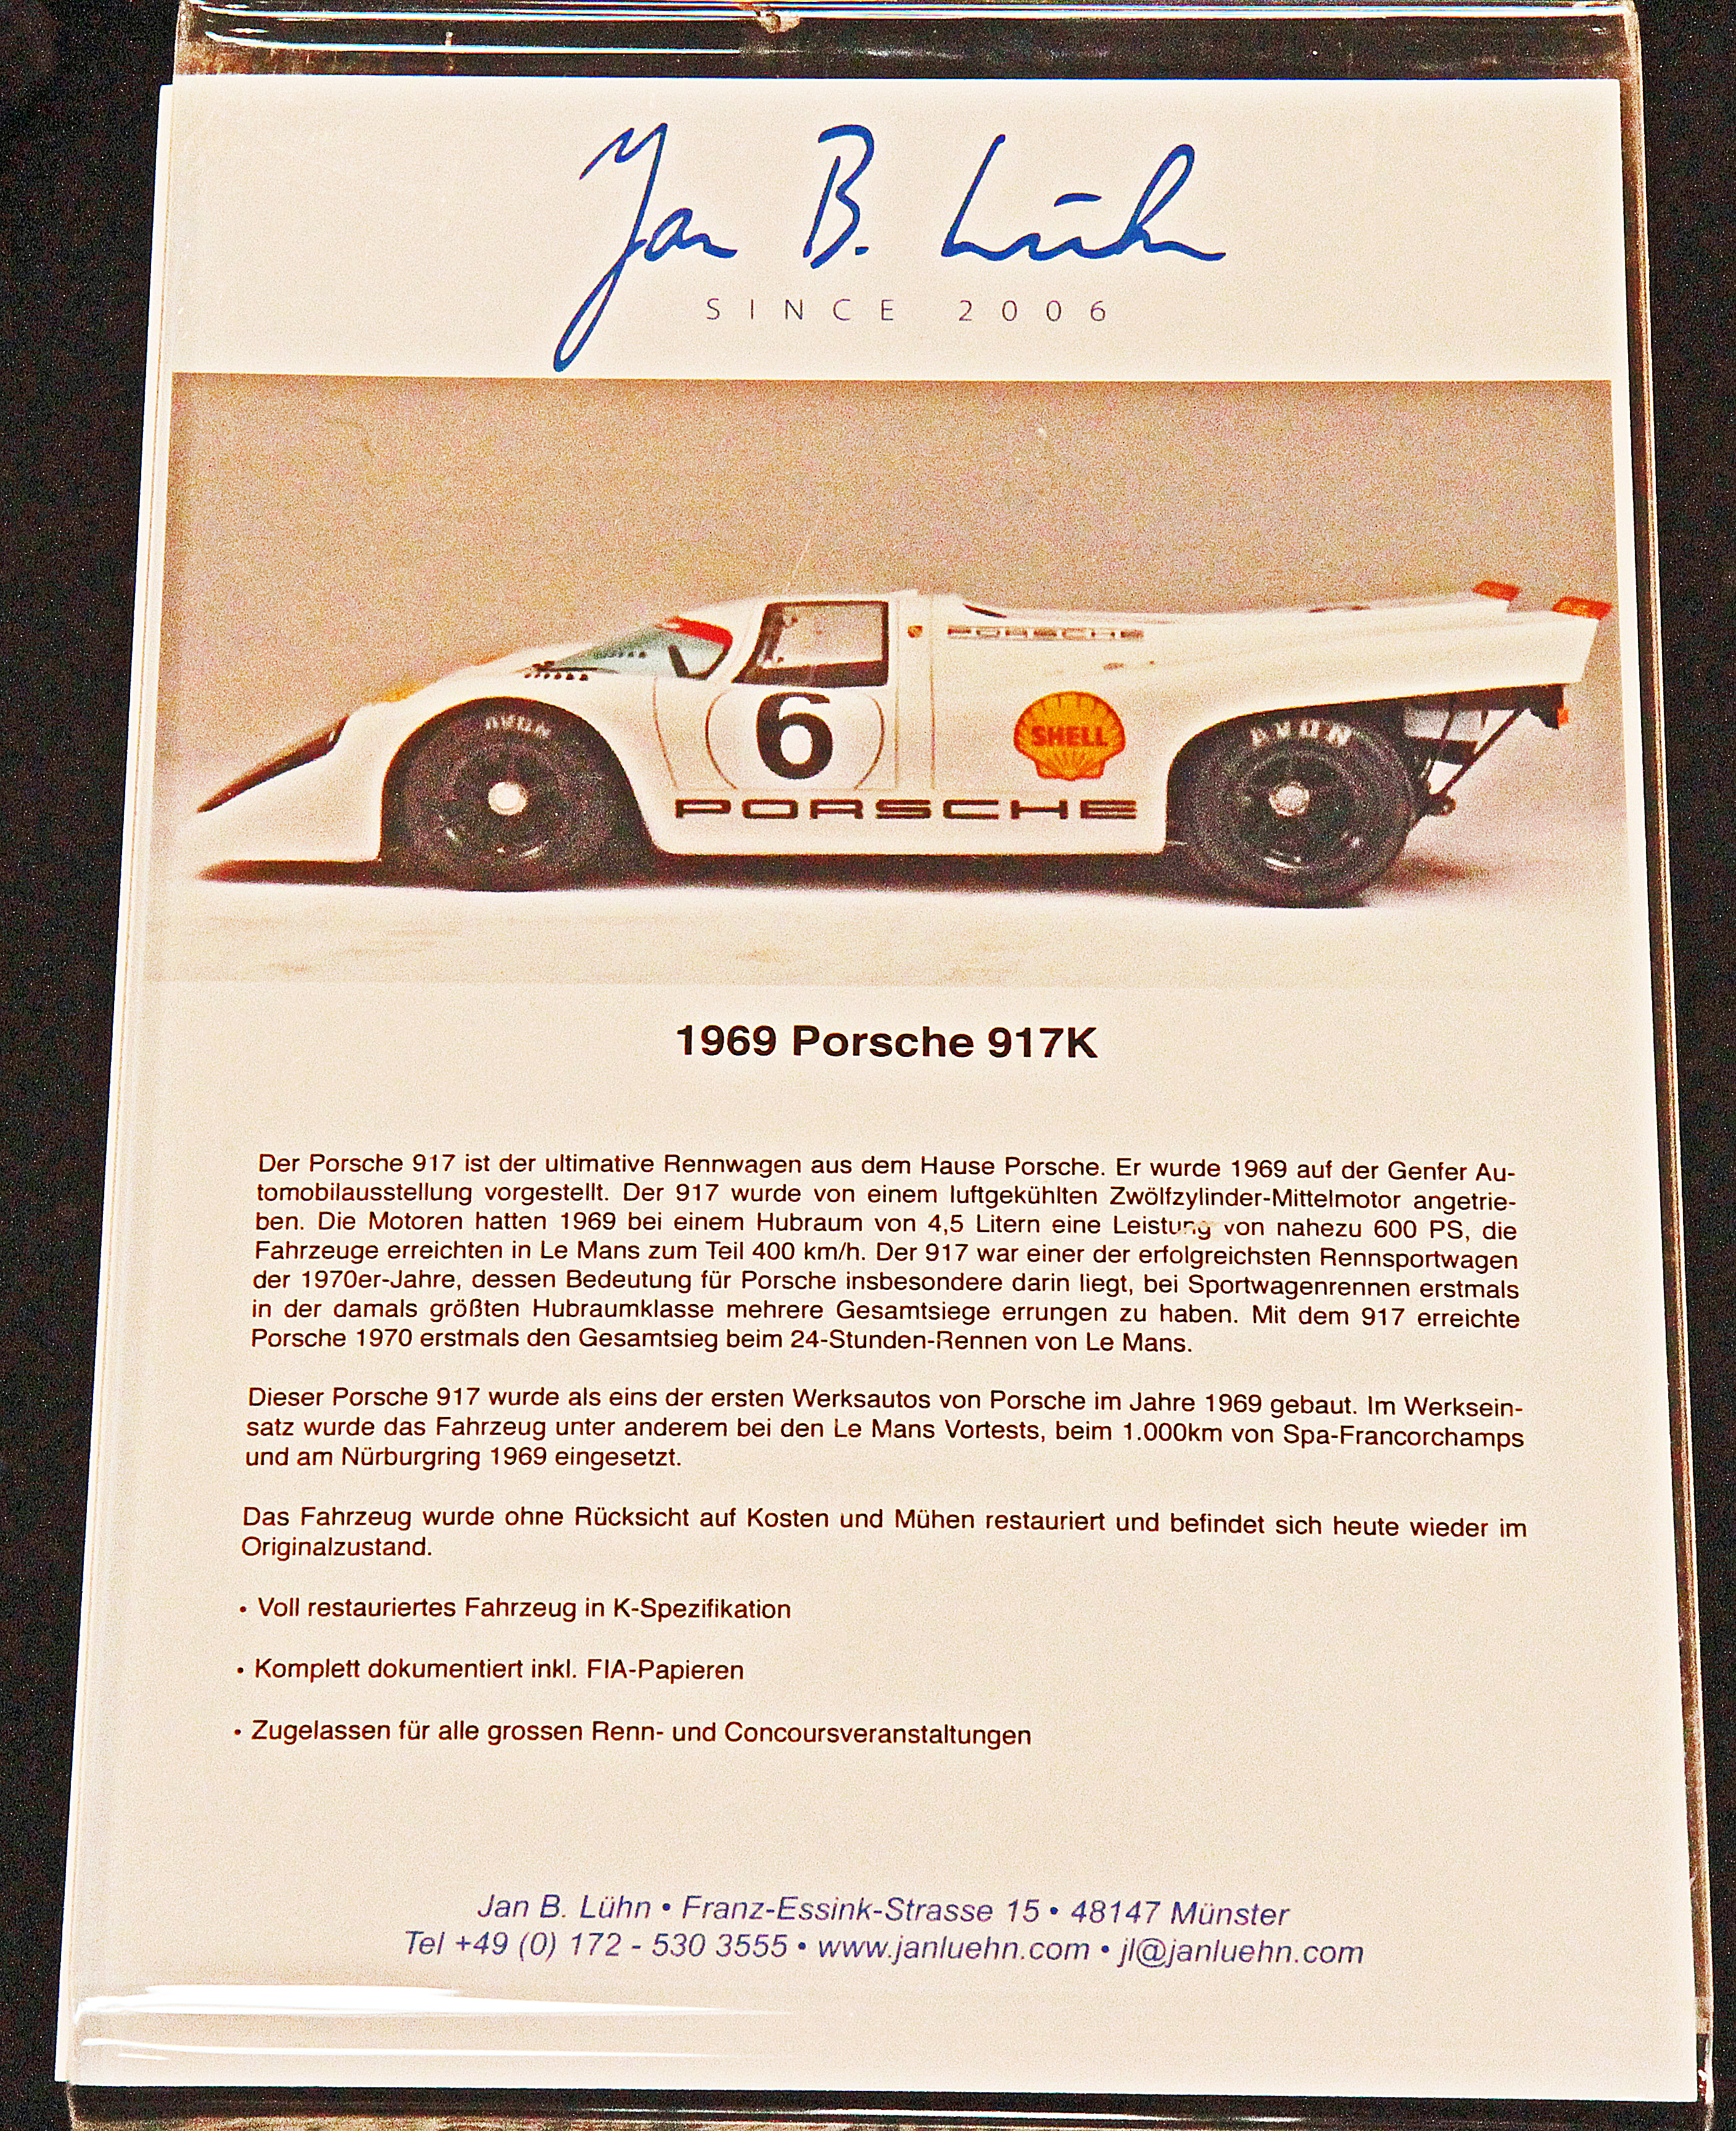 Porsche 917K 1969 Techno Classica 2014 Joachim Gruchot Photo